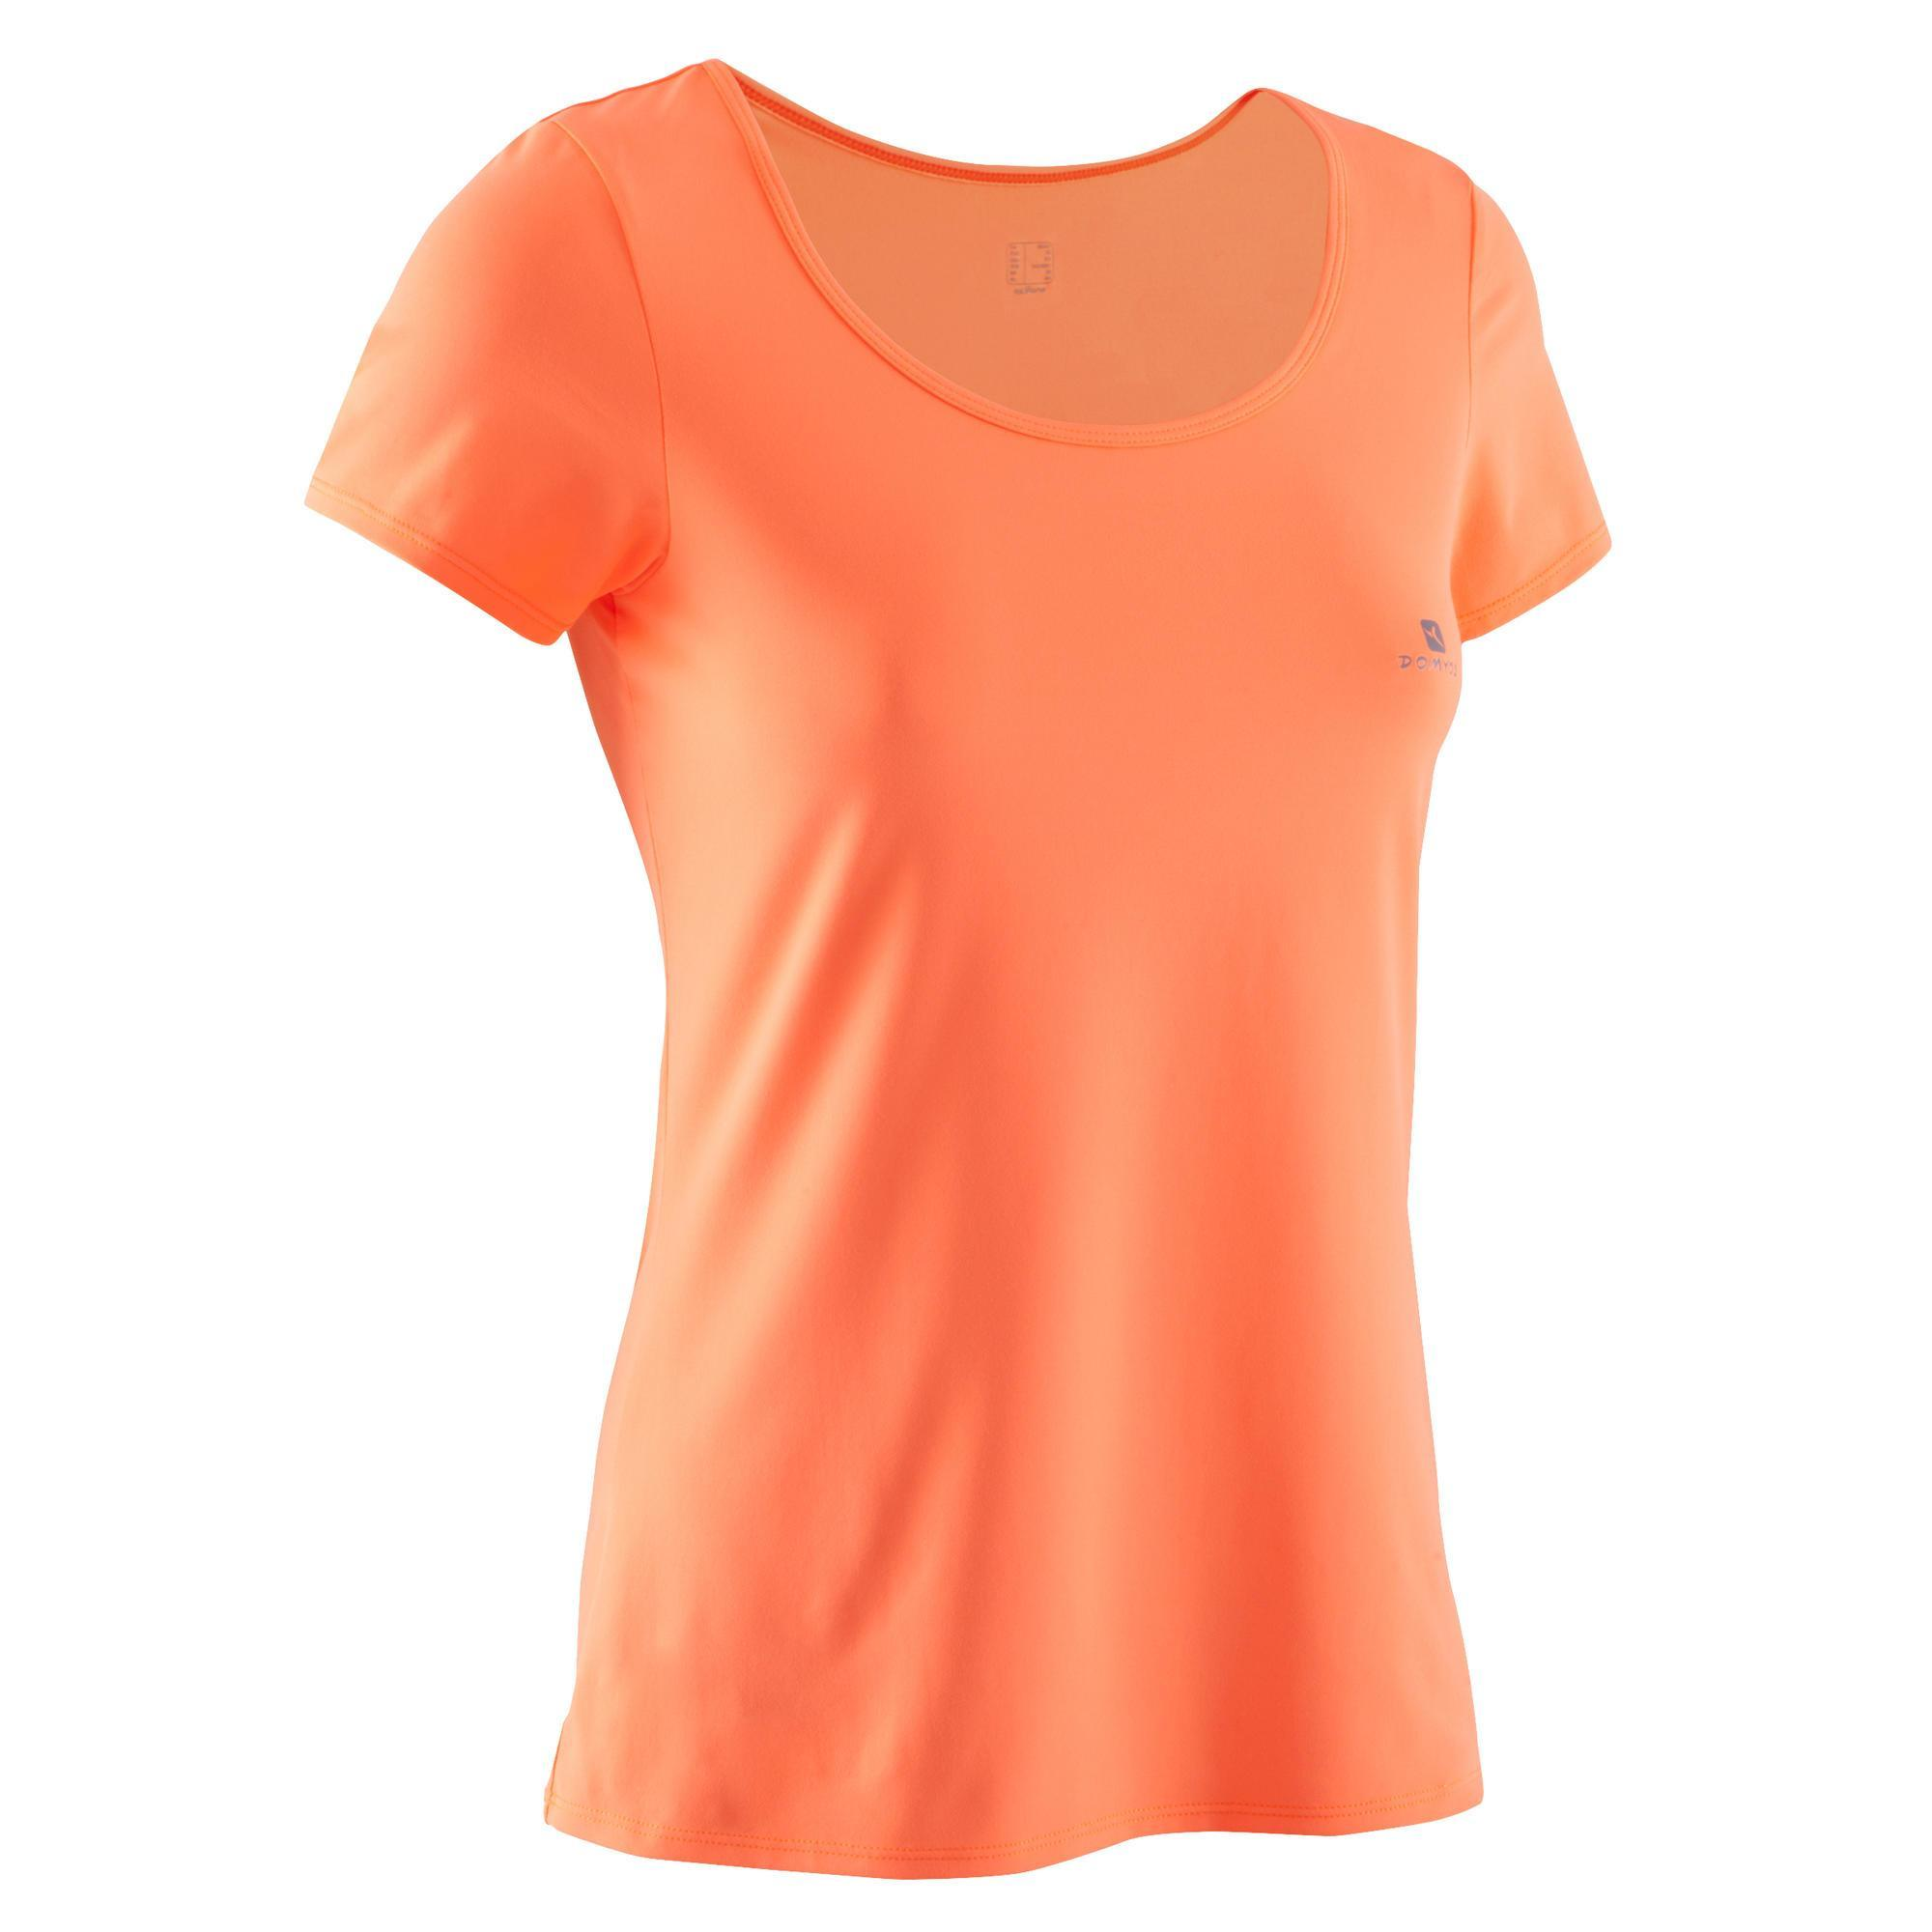 t shirt energy fitness femme orange fluo domyos by decathlon. Black Bedroom Furniture Sets. Home Design Ideas